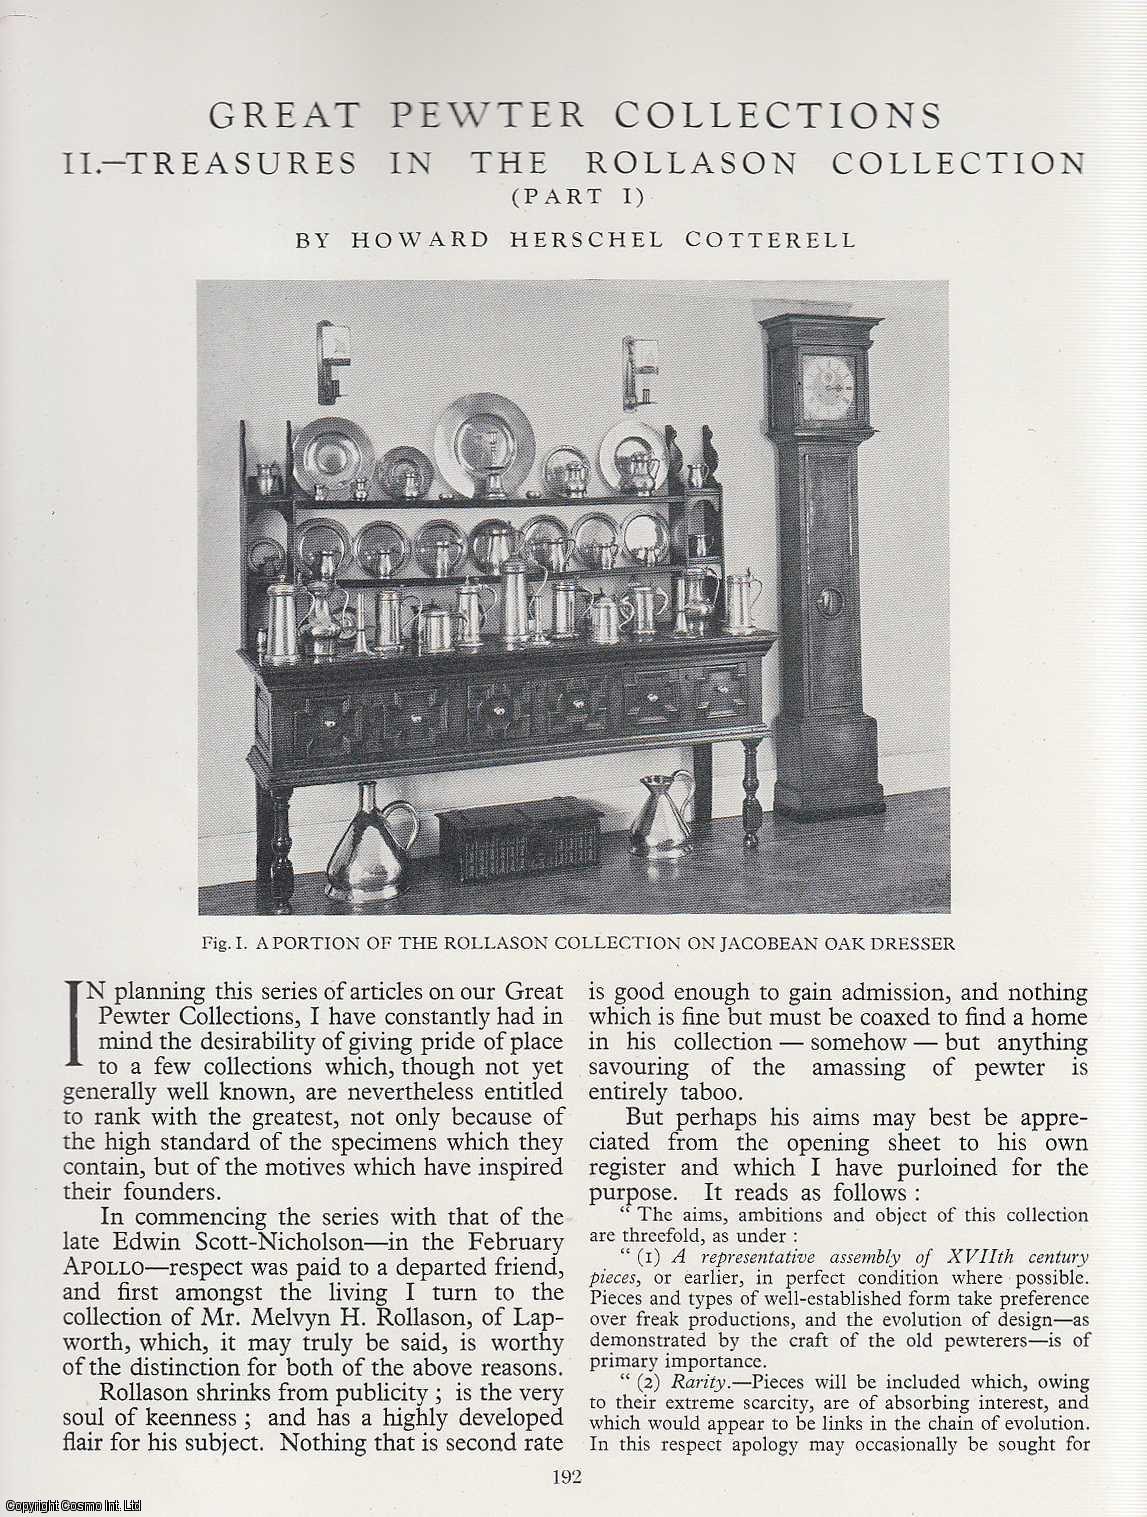 COTTERELL, HOWARD HERSCHEL - Great Pewter Collections Treasures in The Rollason Collection. Part 1. An original article from the Apollo, the Magazine of the Arts. 1934.